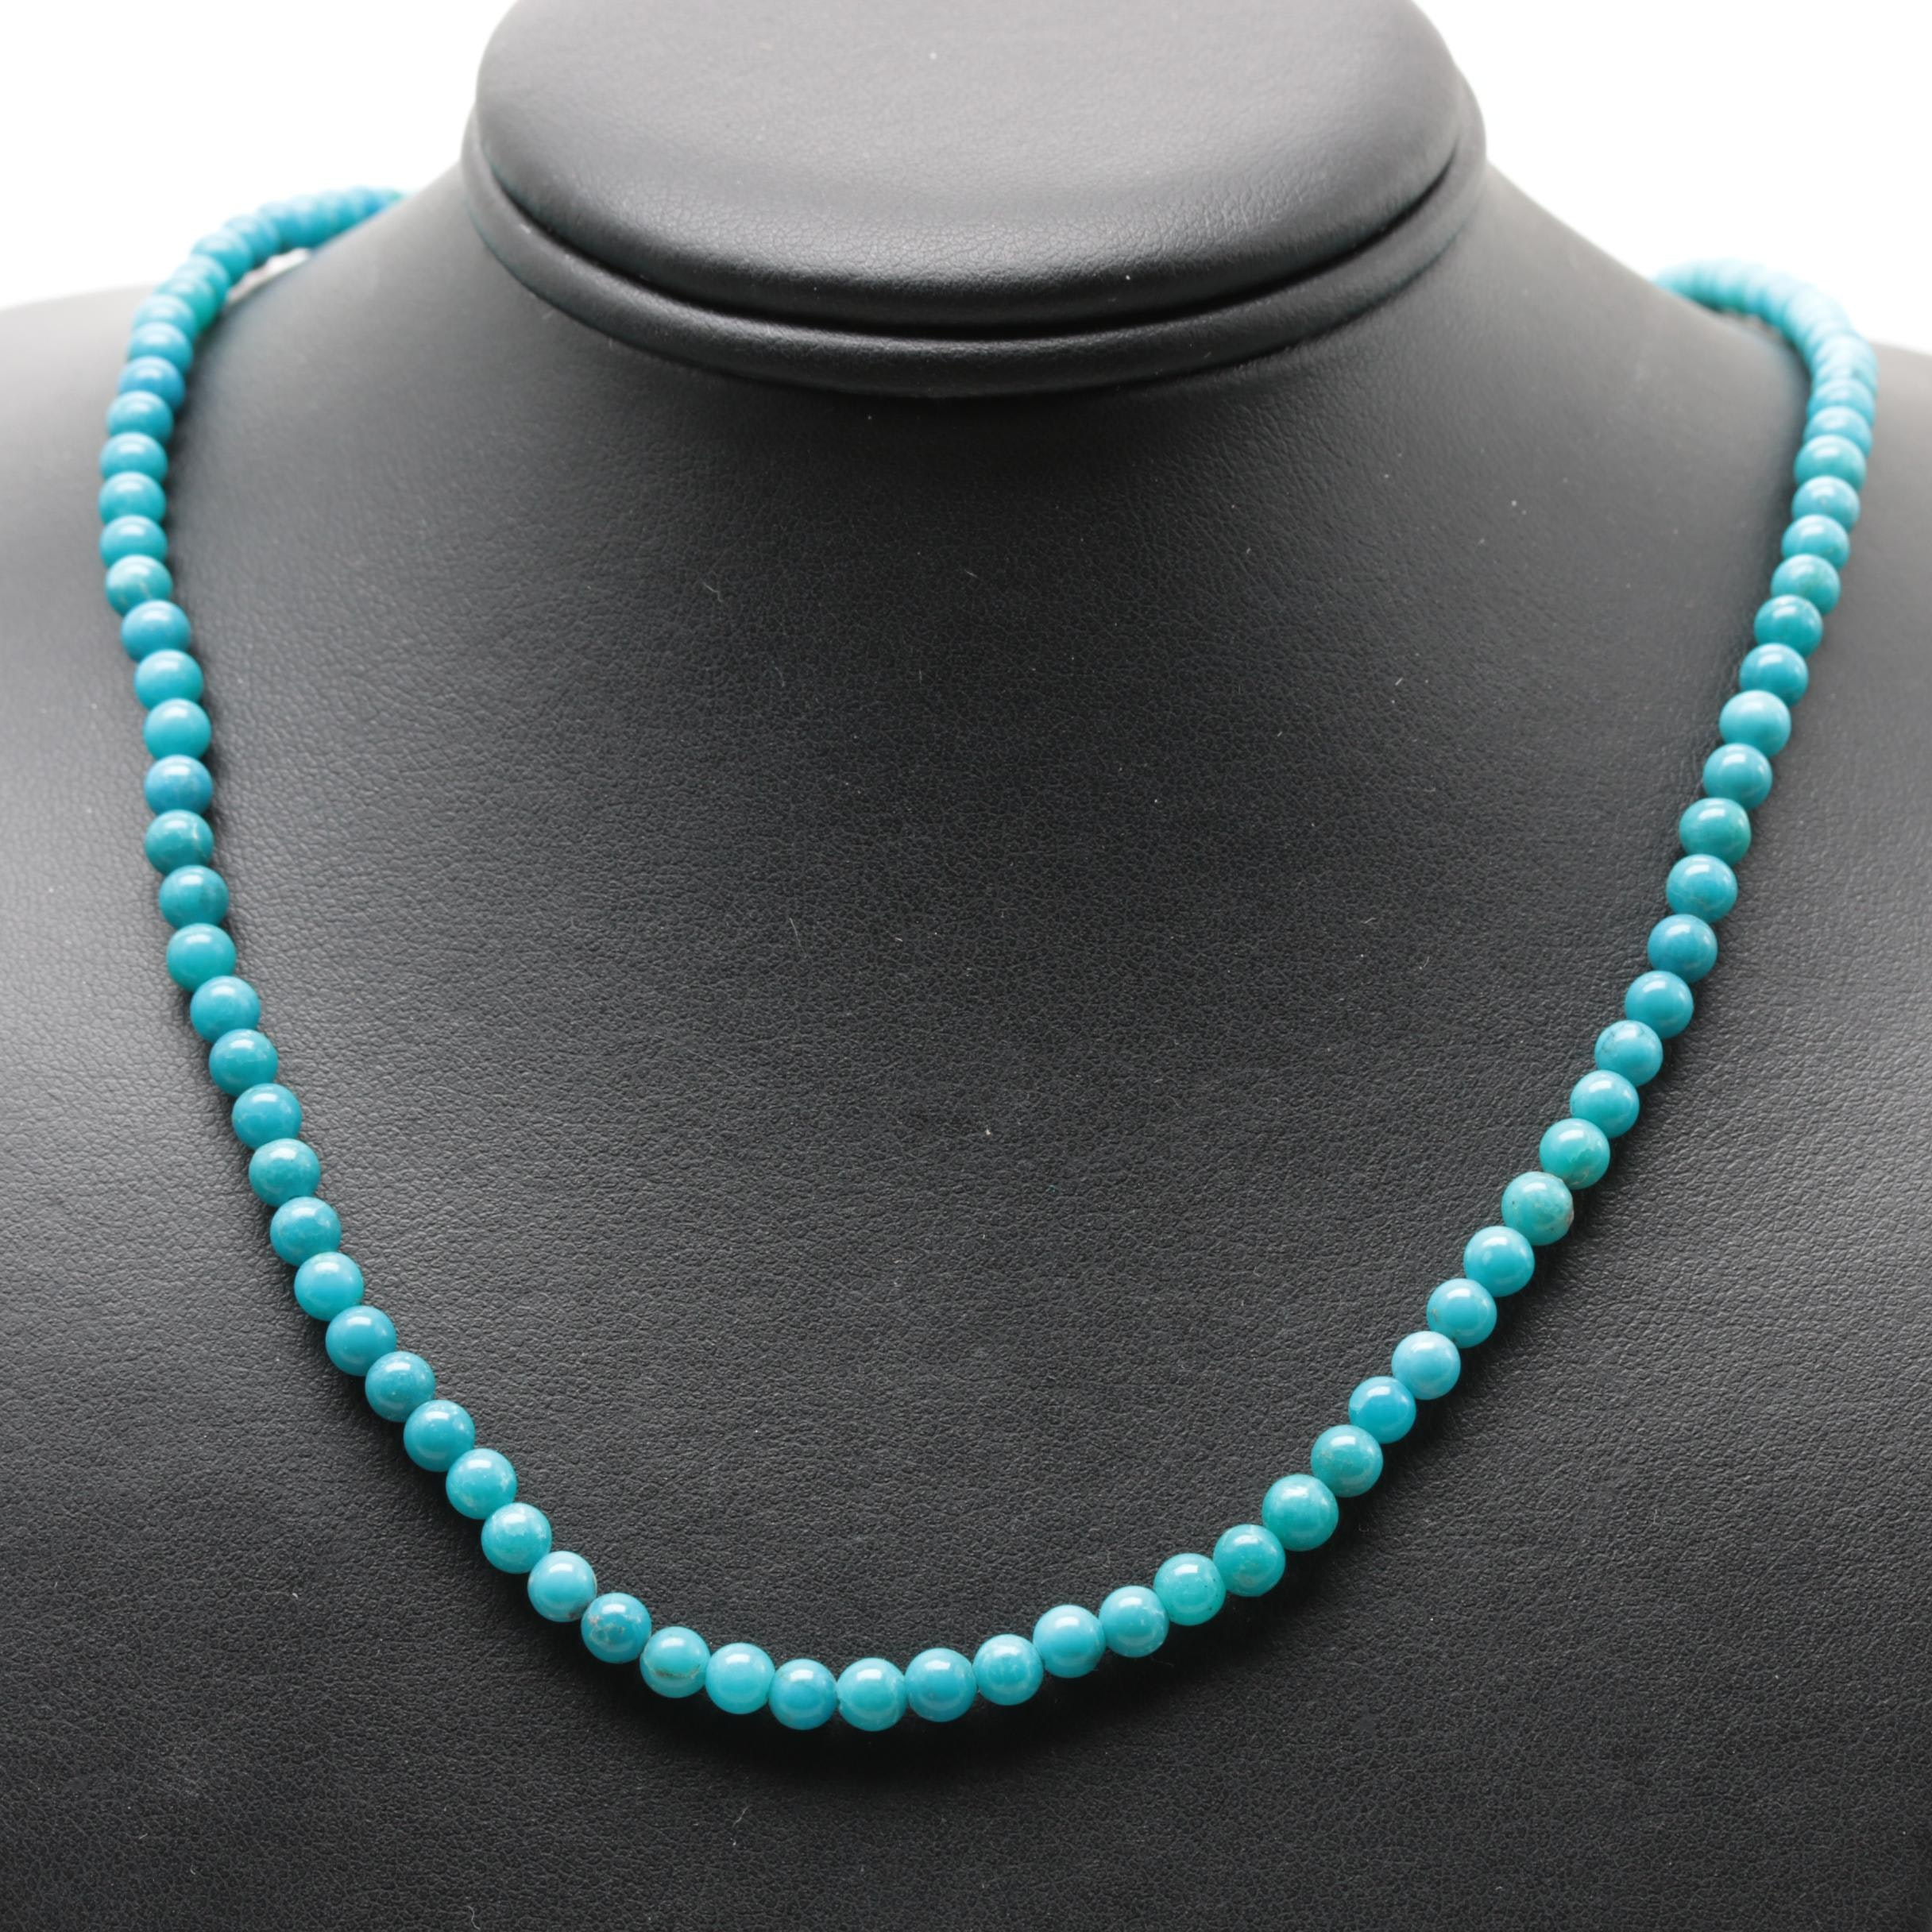 14K and 10K Yellow Gold Stabilized Turquoise Necklace